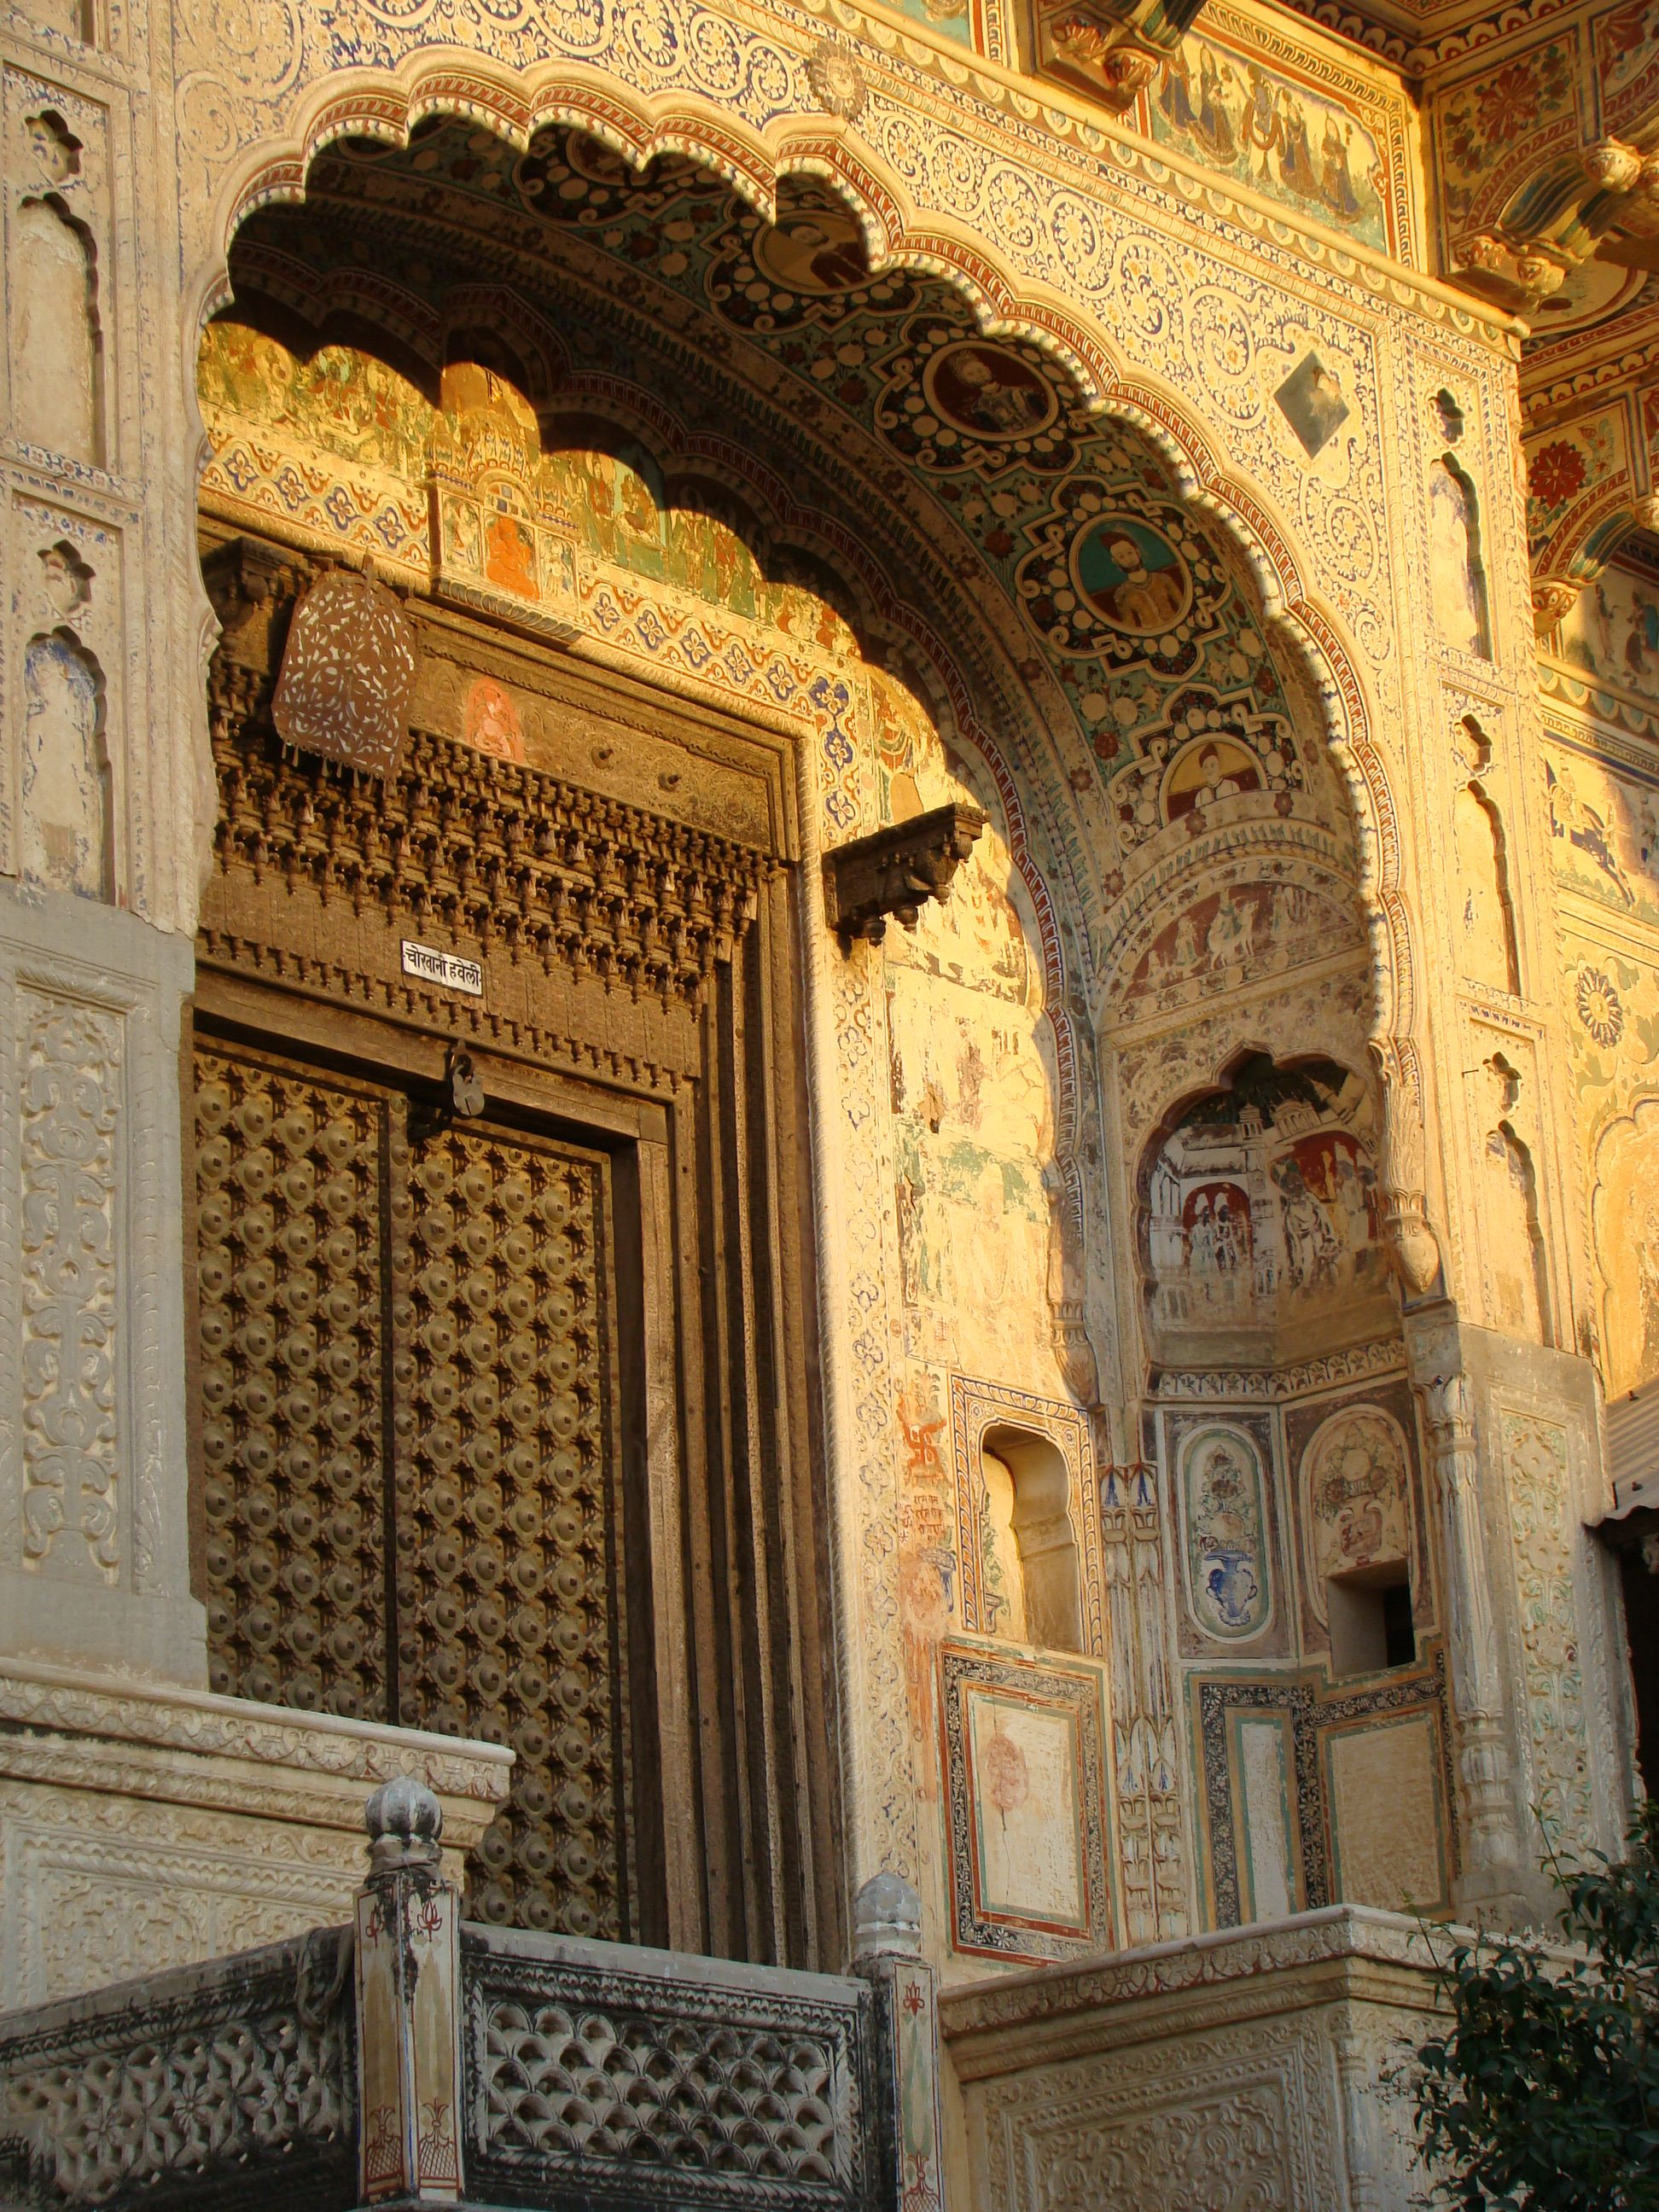 Elaborately decorated haveli (merchant's town home) in  Mandawa, Rajasthan, India